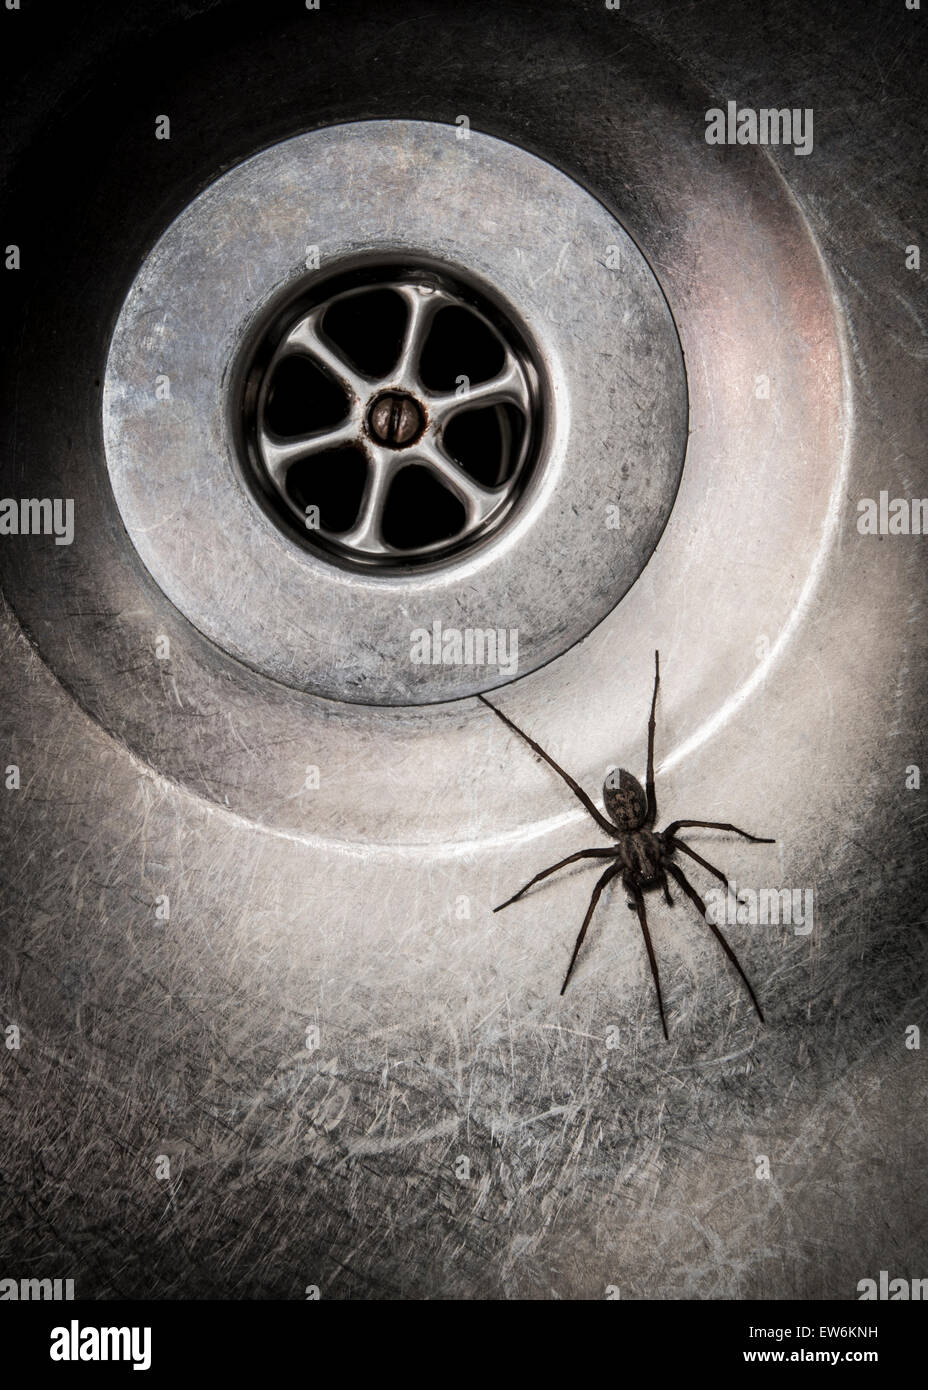 Spider in sink - Stock Image